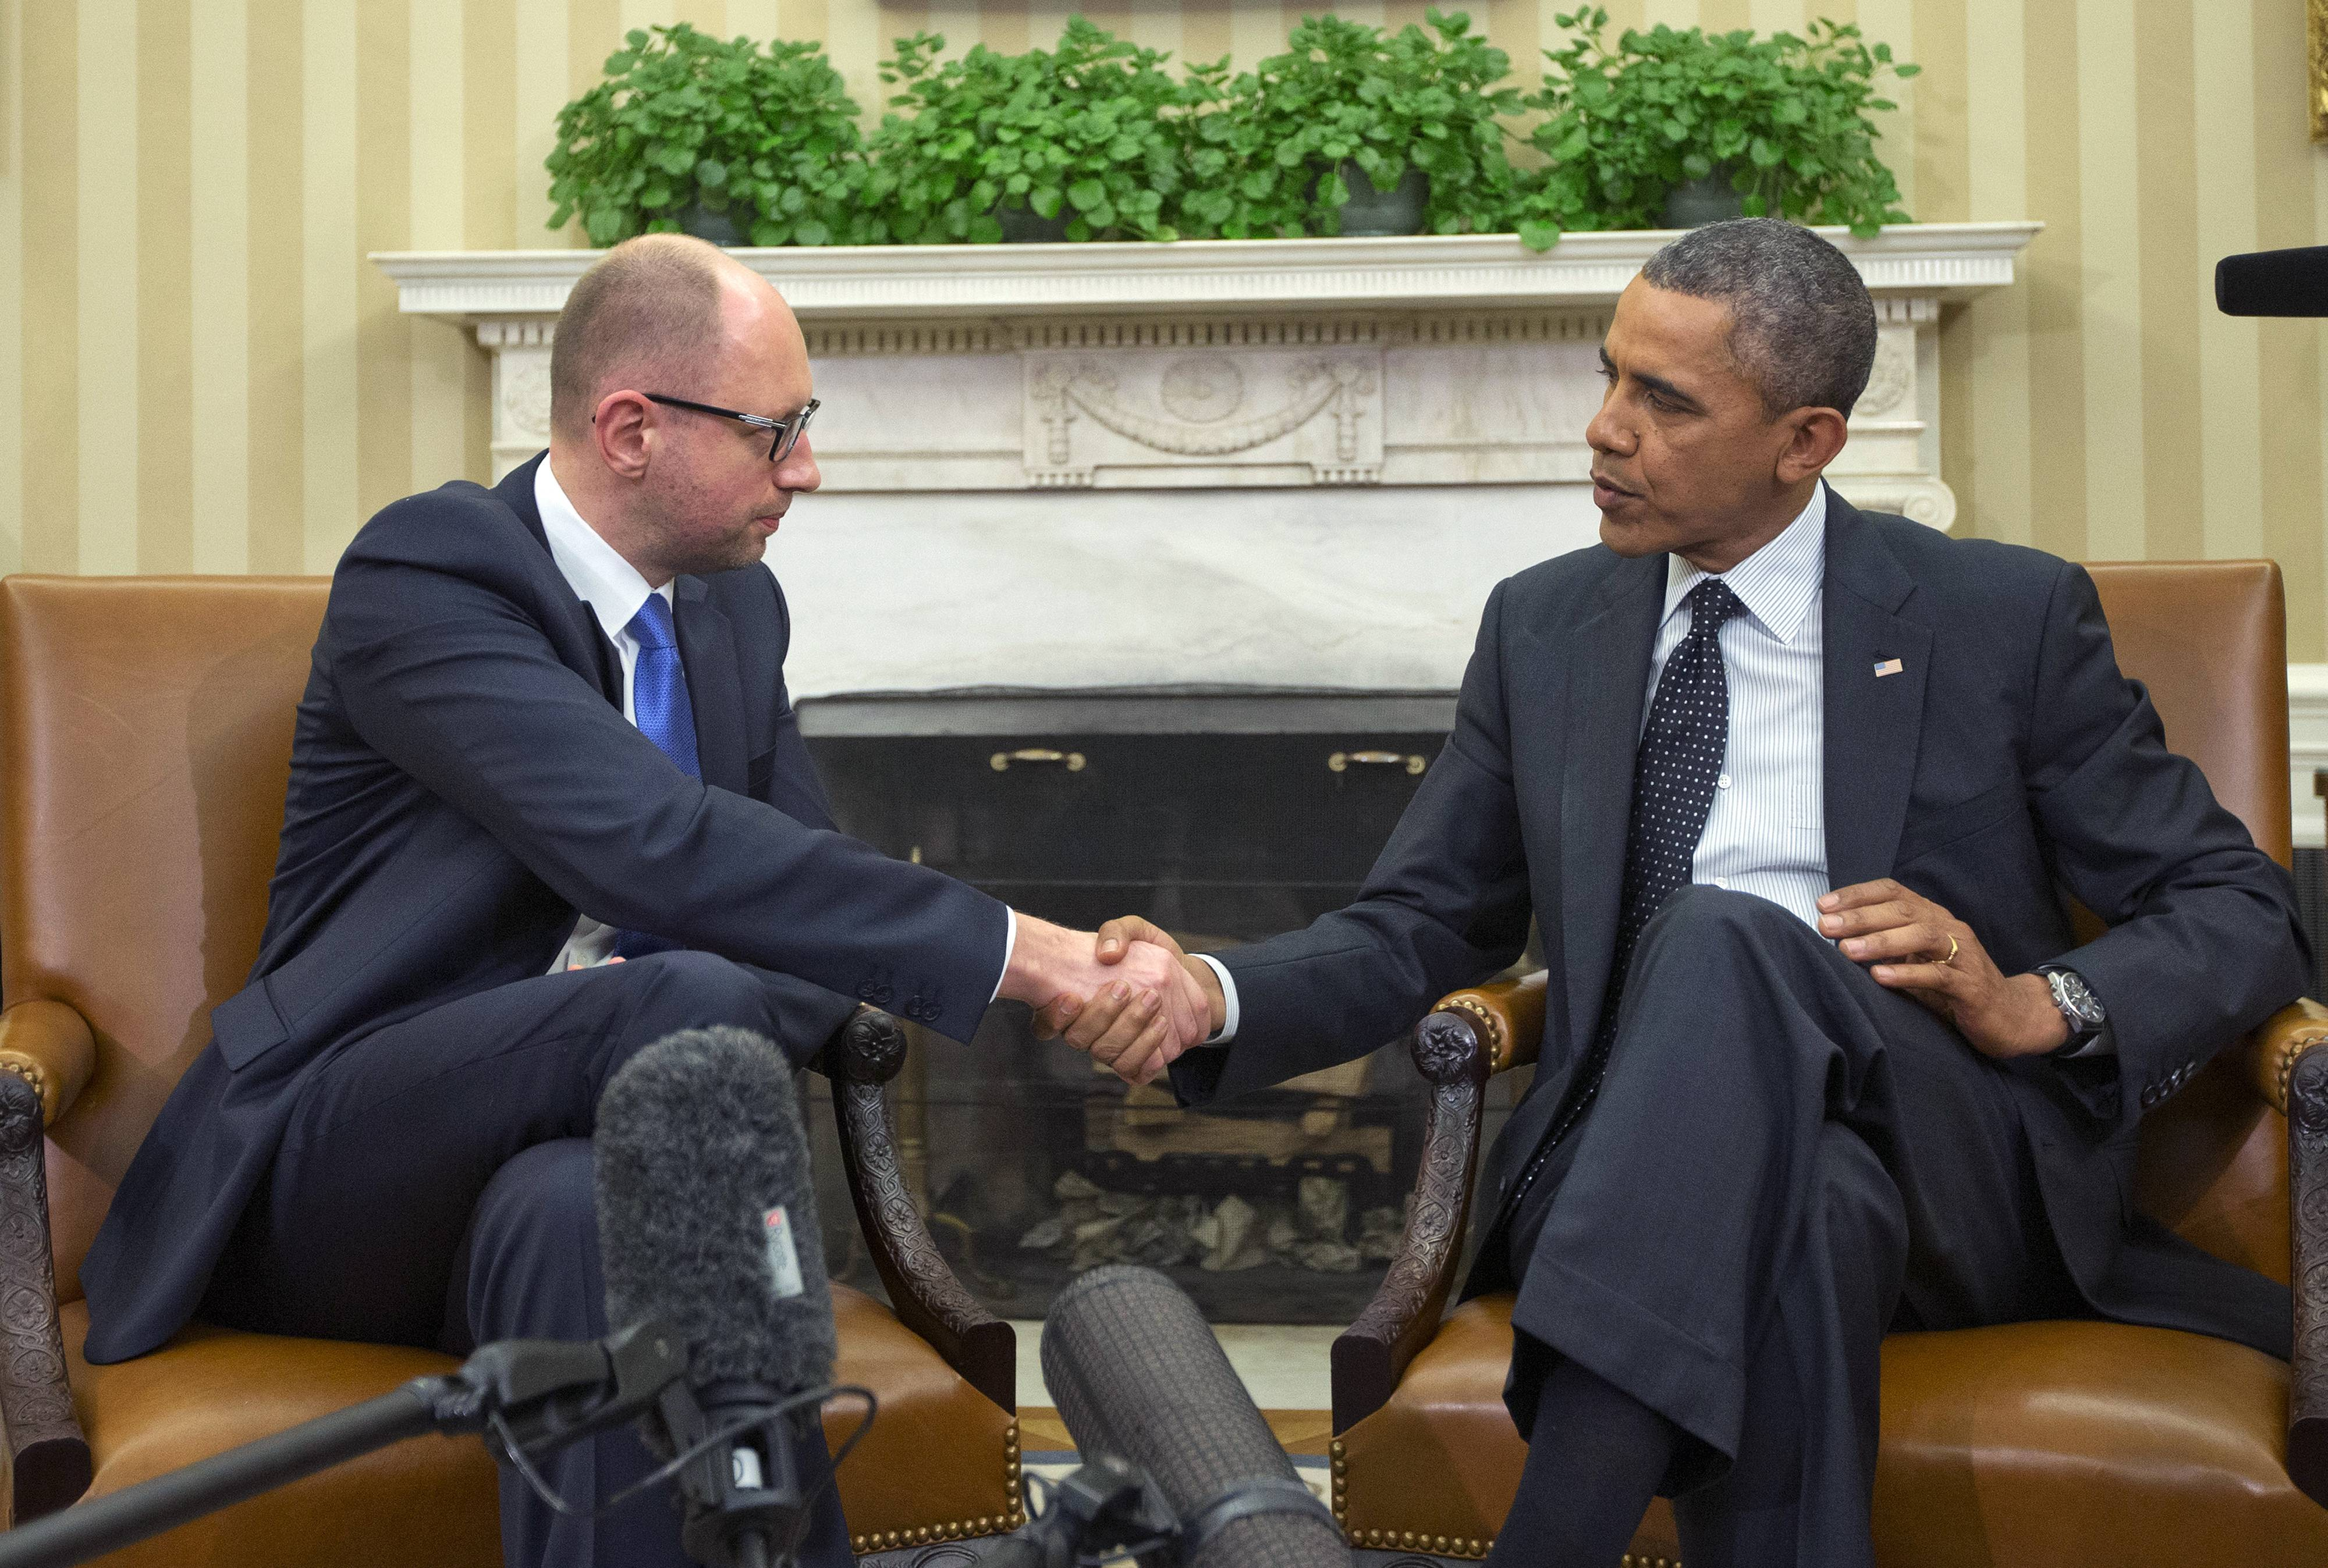 President Barack Obama, right, and Ukraine Prime Minister Arseniy Yatsenyuk, left, met at the White House Wednesday. Obama sought to highlight ties with the former Soviet republic now caught in a diplomatic battle between East and West.